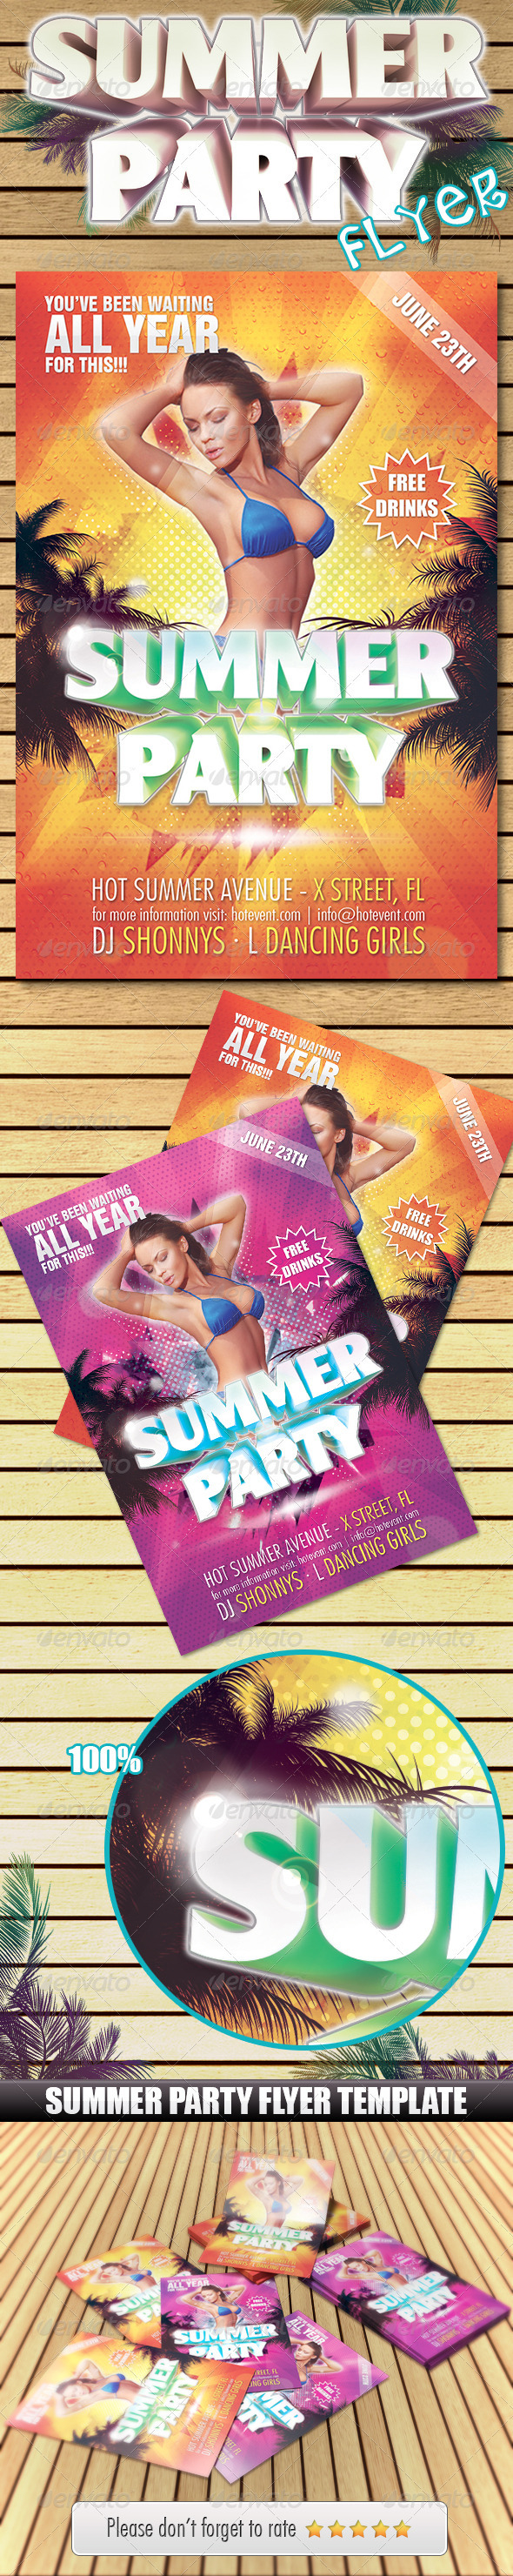 Summer Party Flyer!!! - Clubs & Parties Events